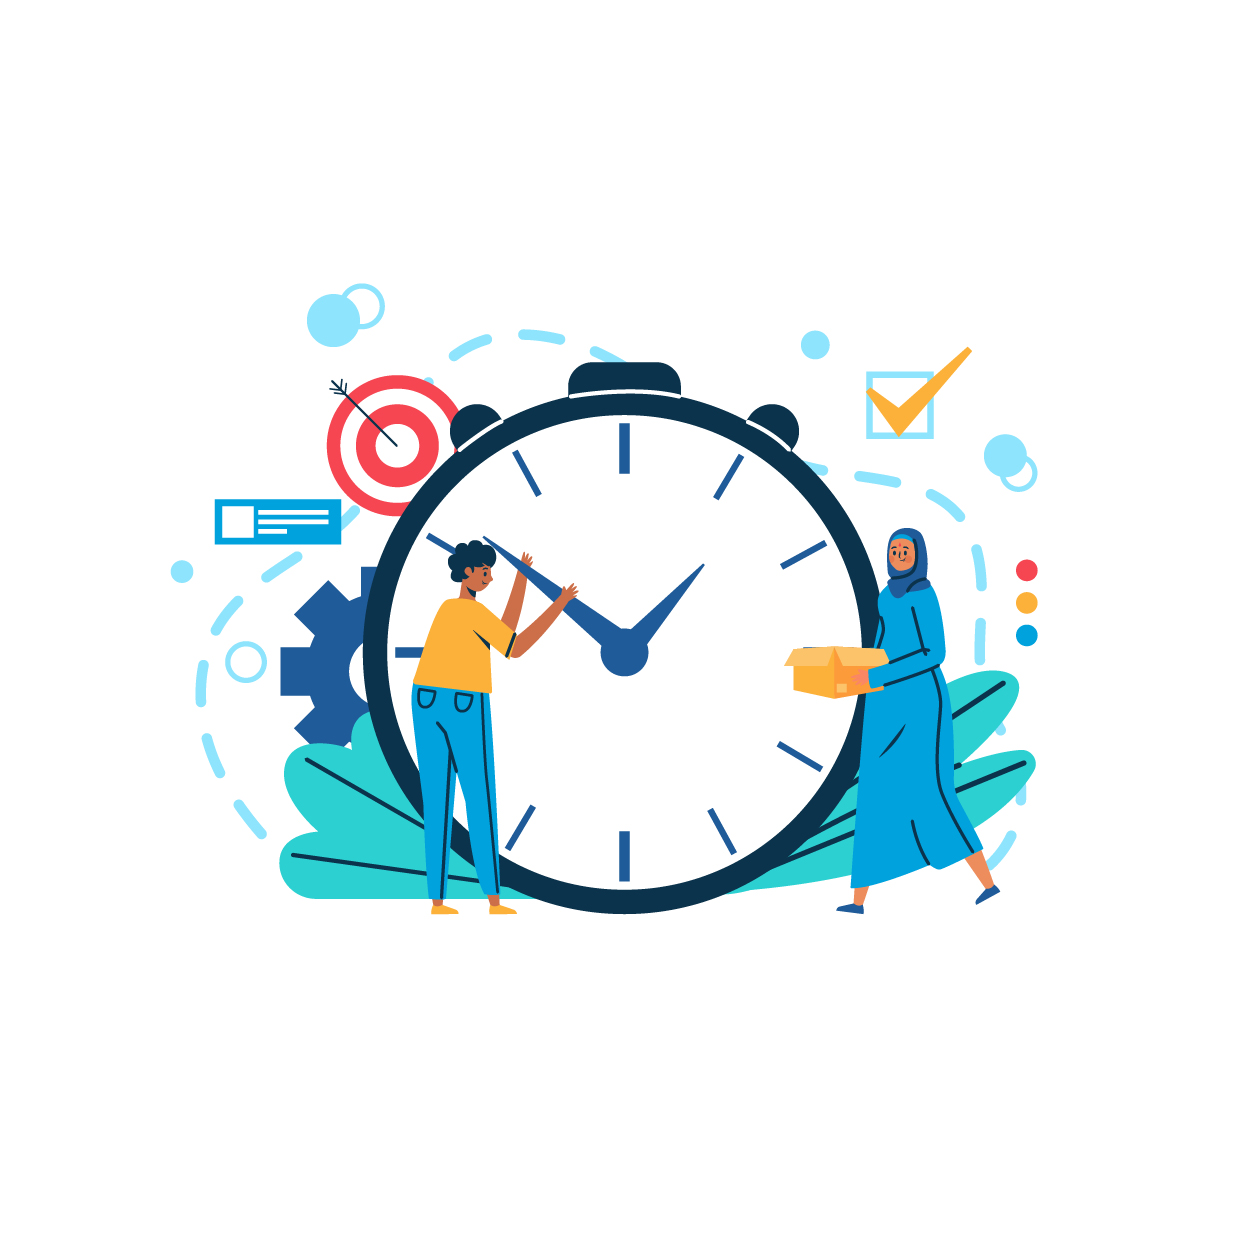 Time - Kemialytics reduces time on research